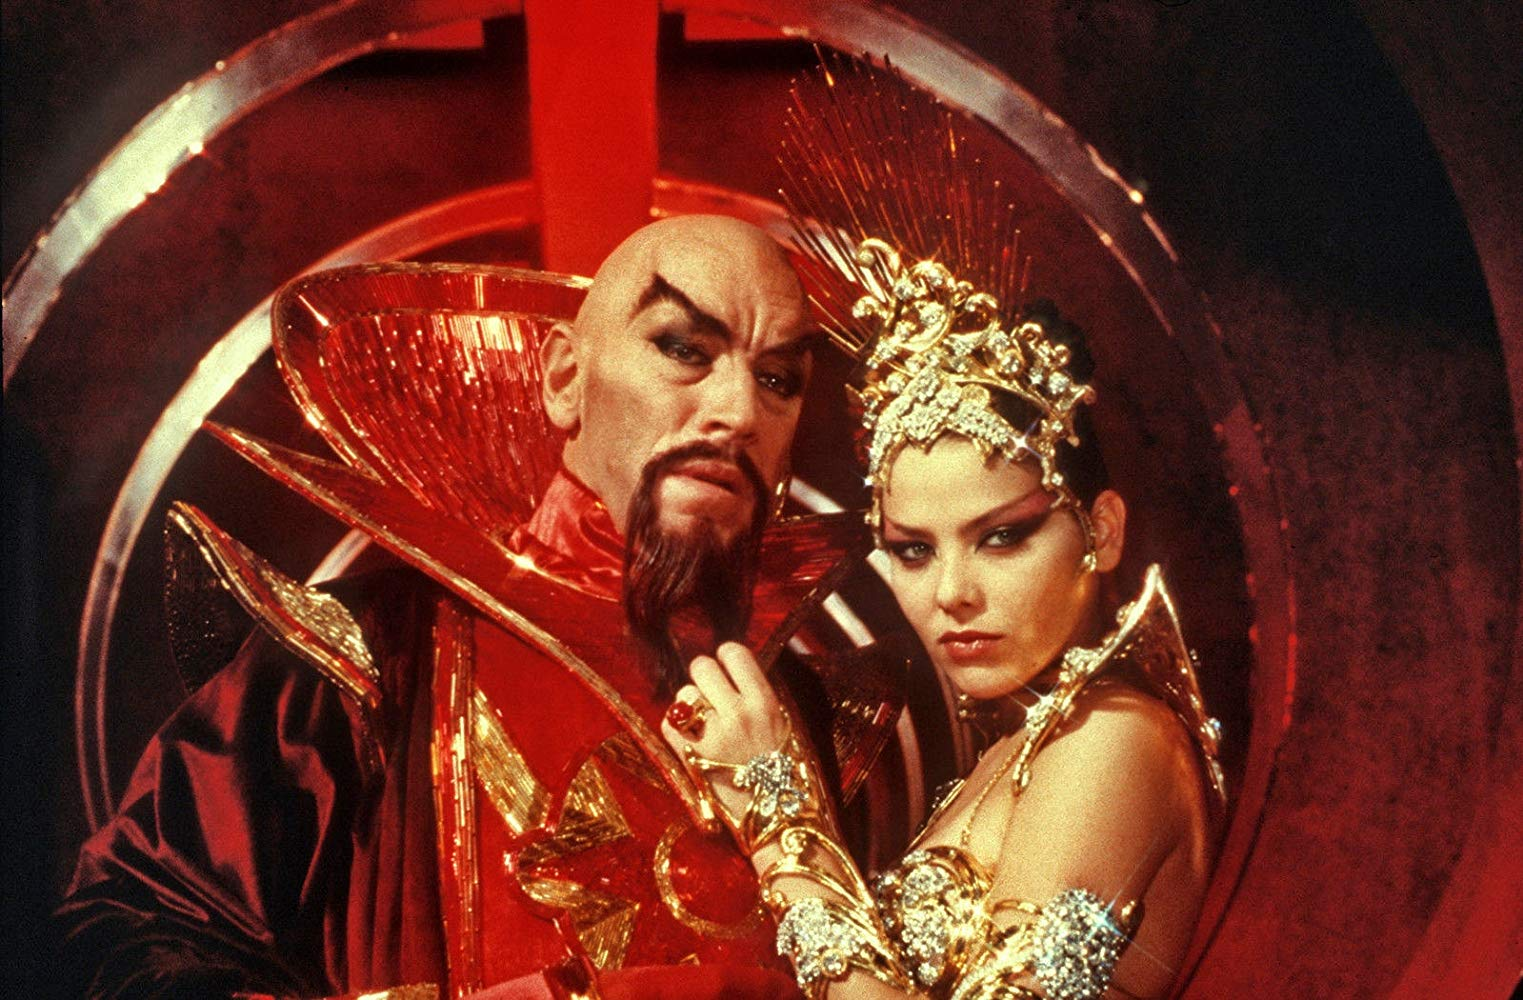 Max Von Sydow as Ming the Merciless and Ornella Muti as Princess Aura in Flash Gordon (1980)